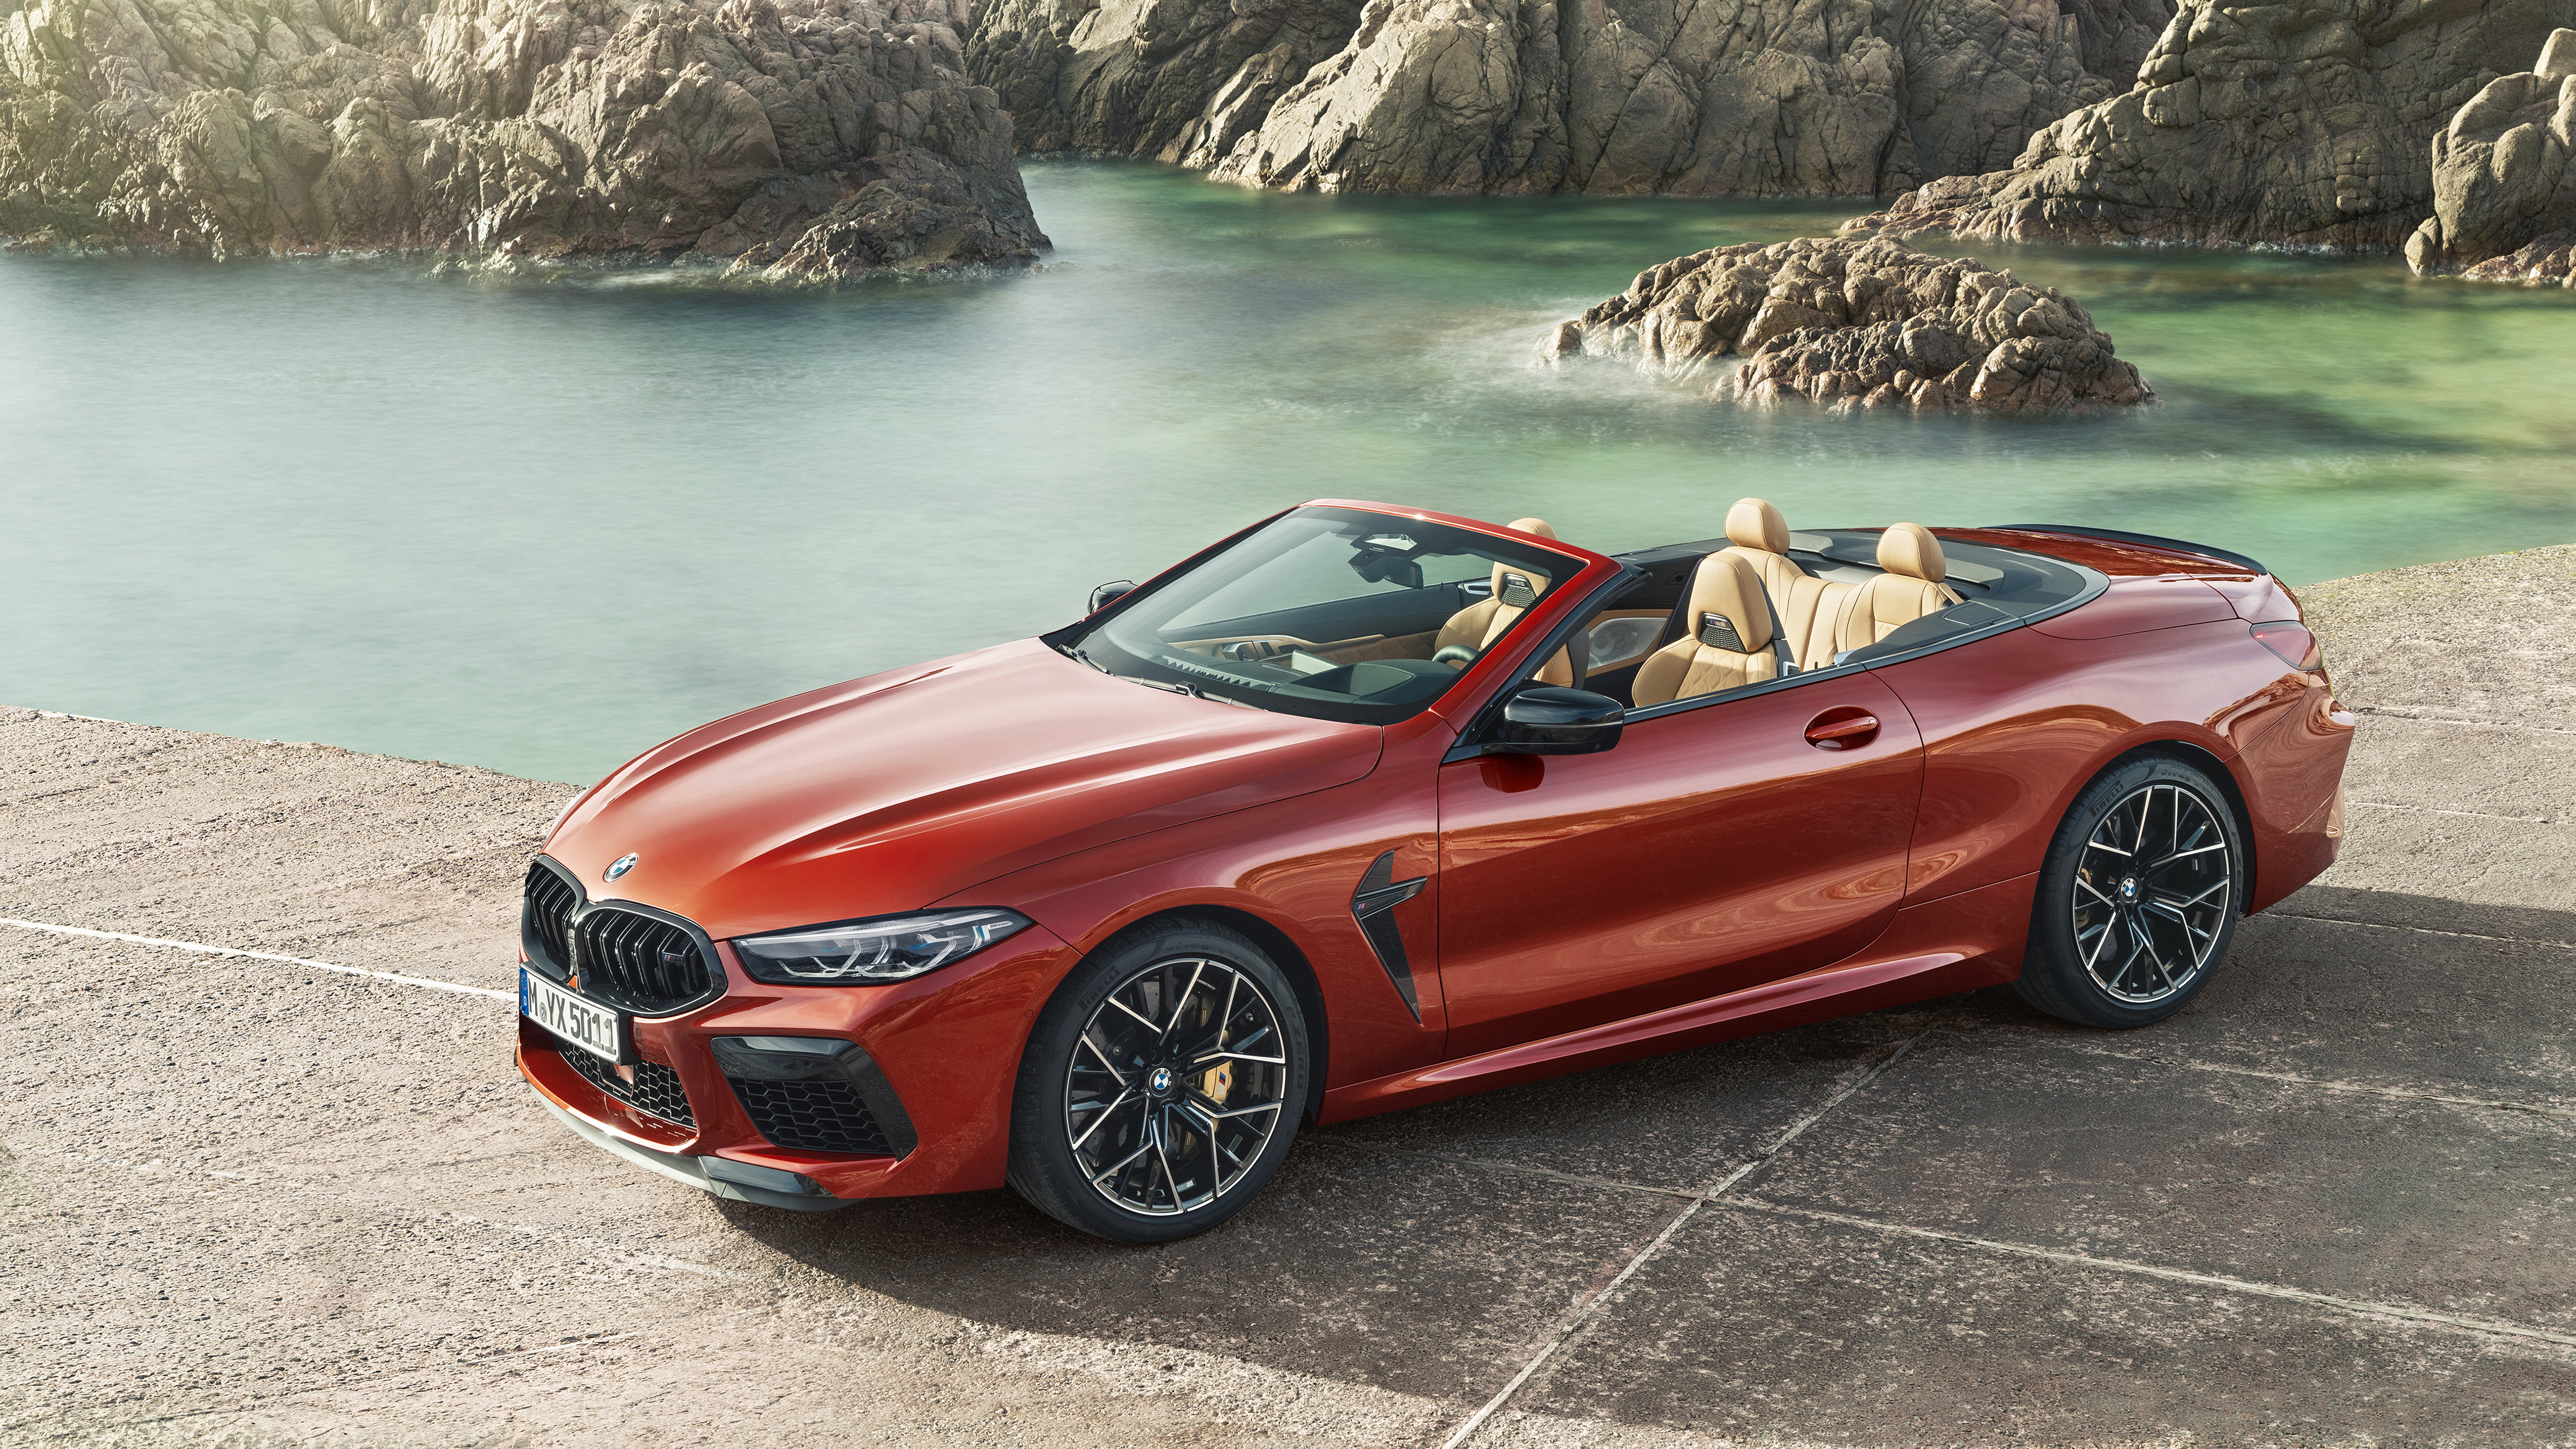 Bmw M8 Competition Cabrio 2019 4k Wallpaper Hd Car Wallpapers Id